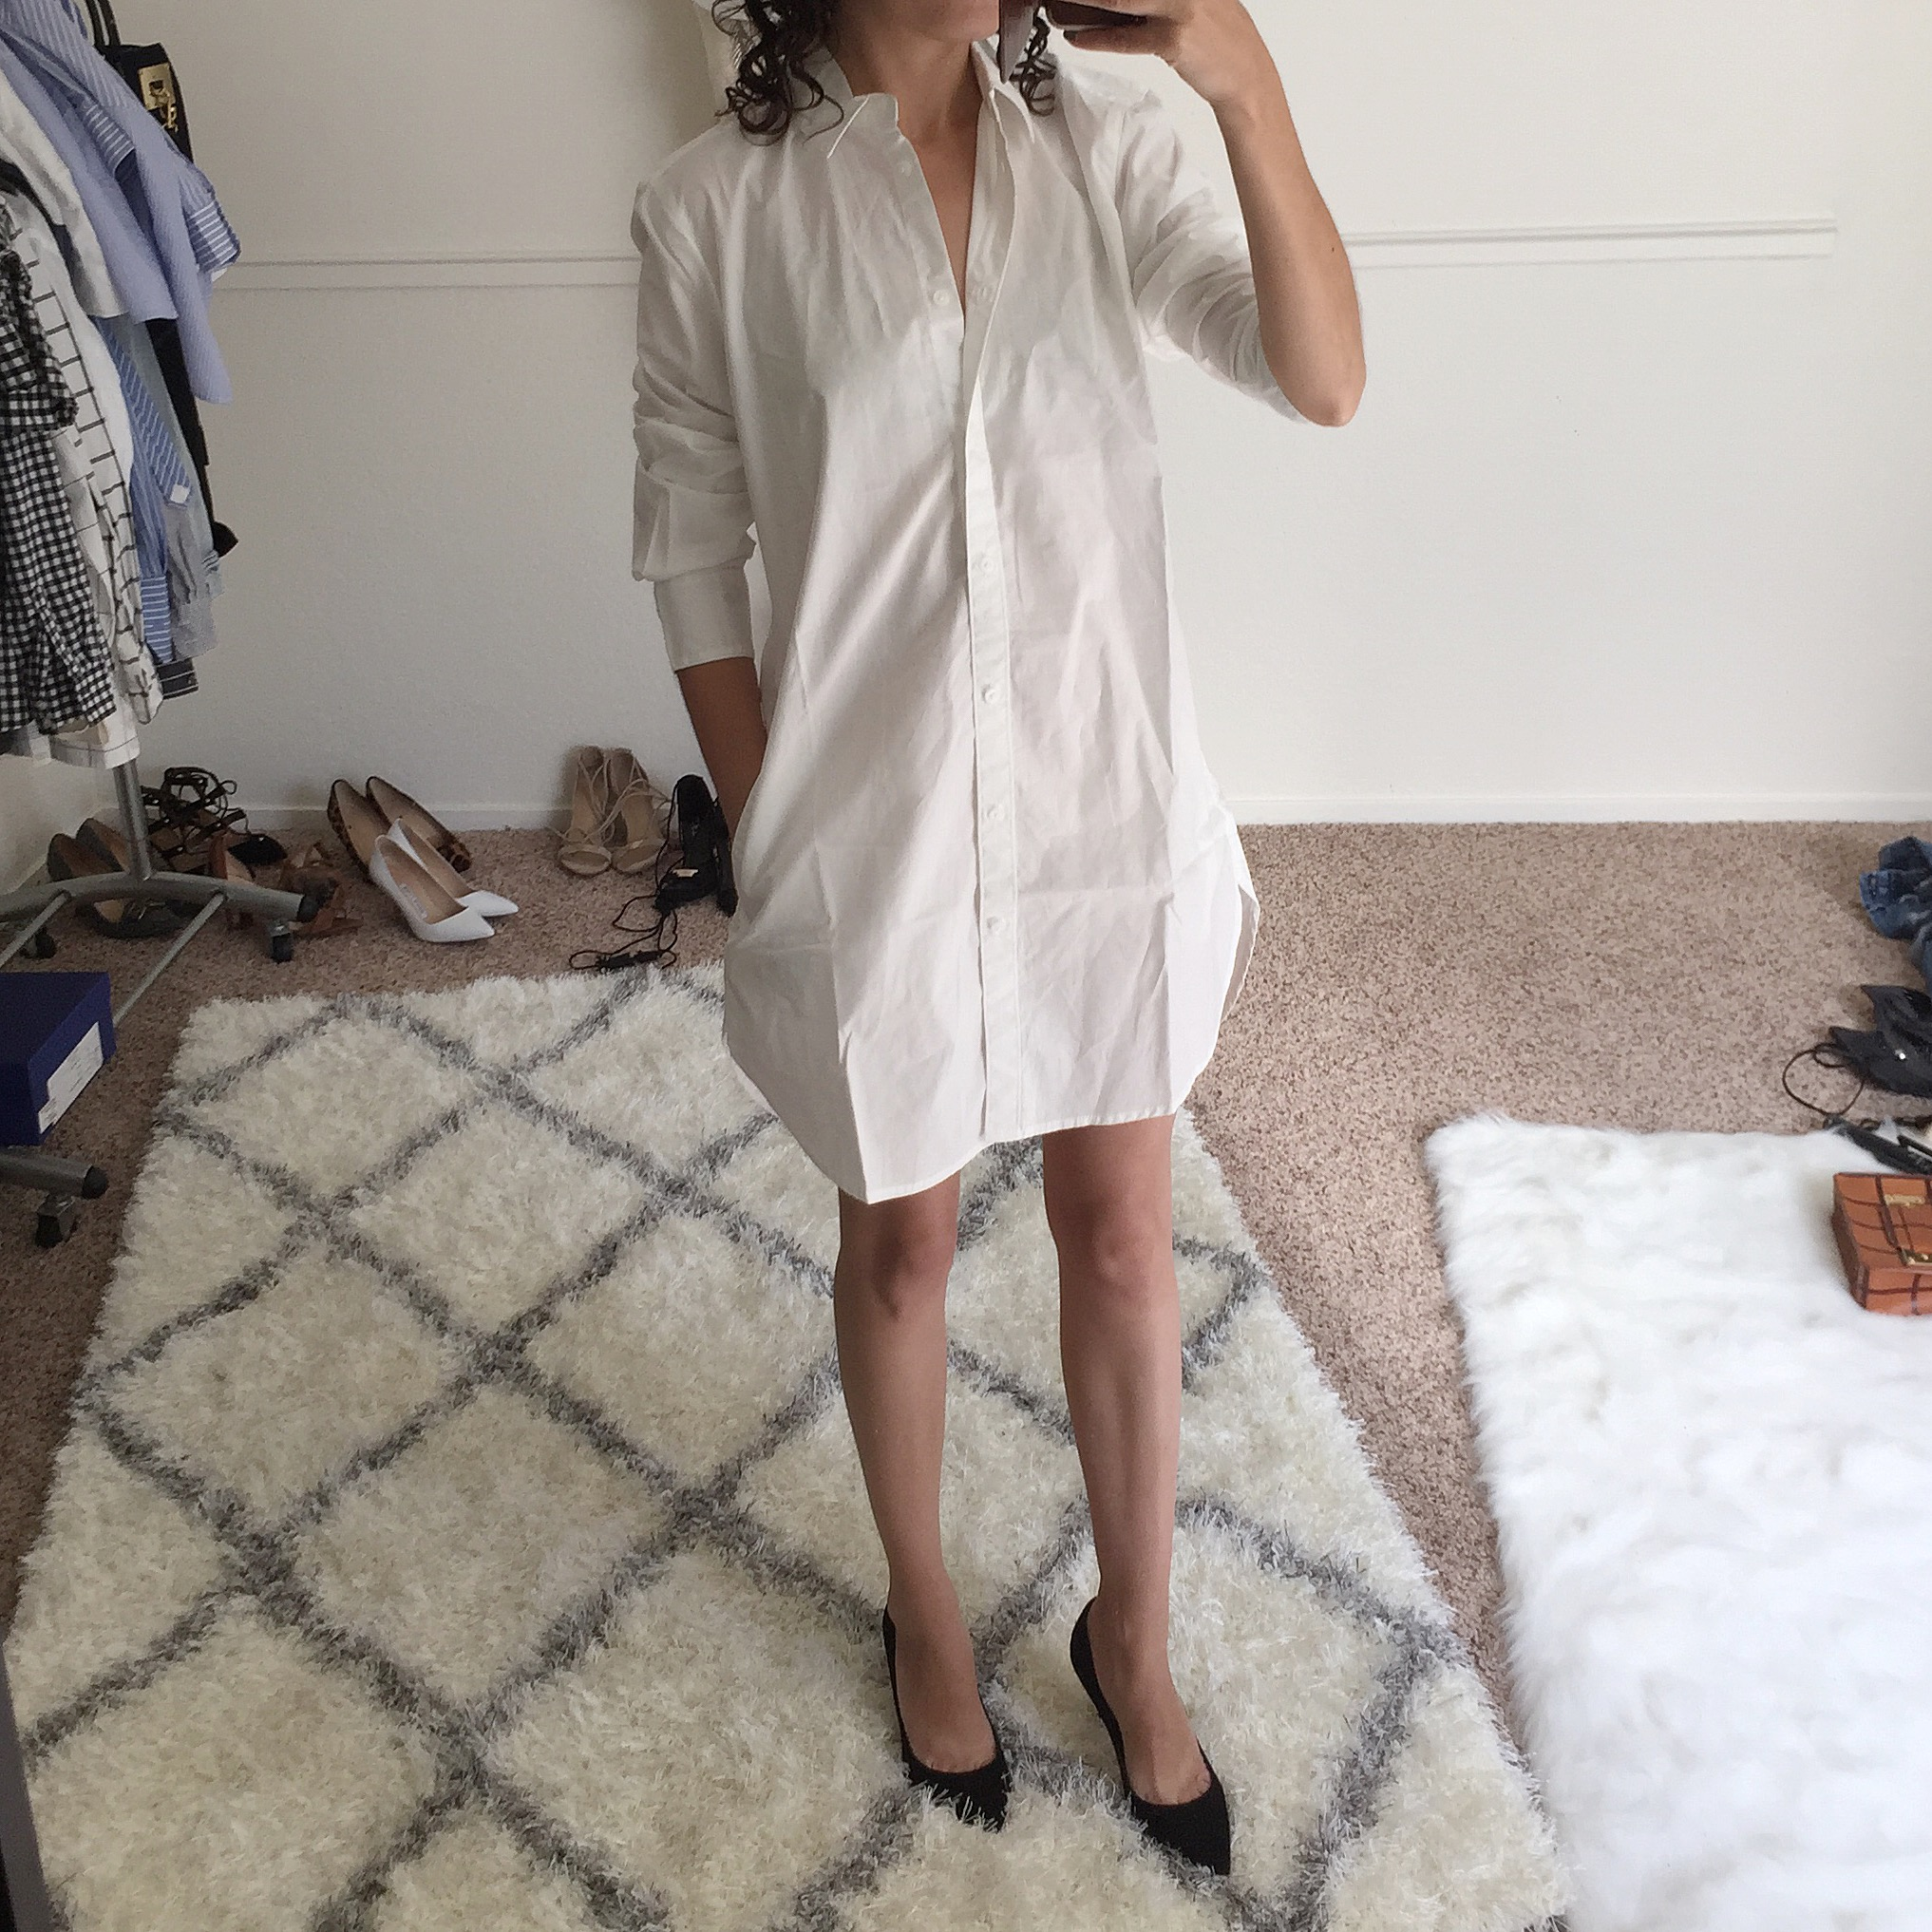 One Girls Madewell Tunic Is Another Girls Shirt Dress Fit Review